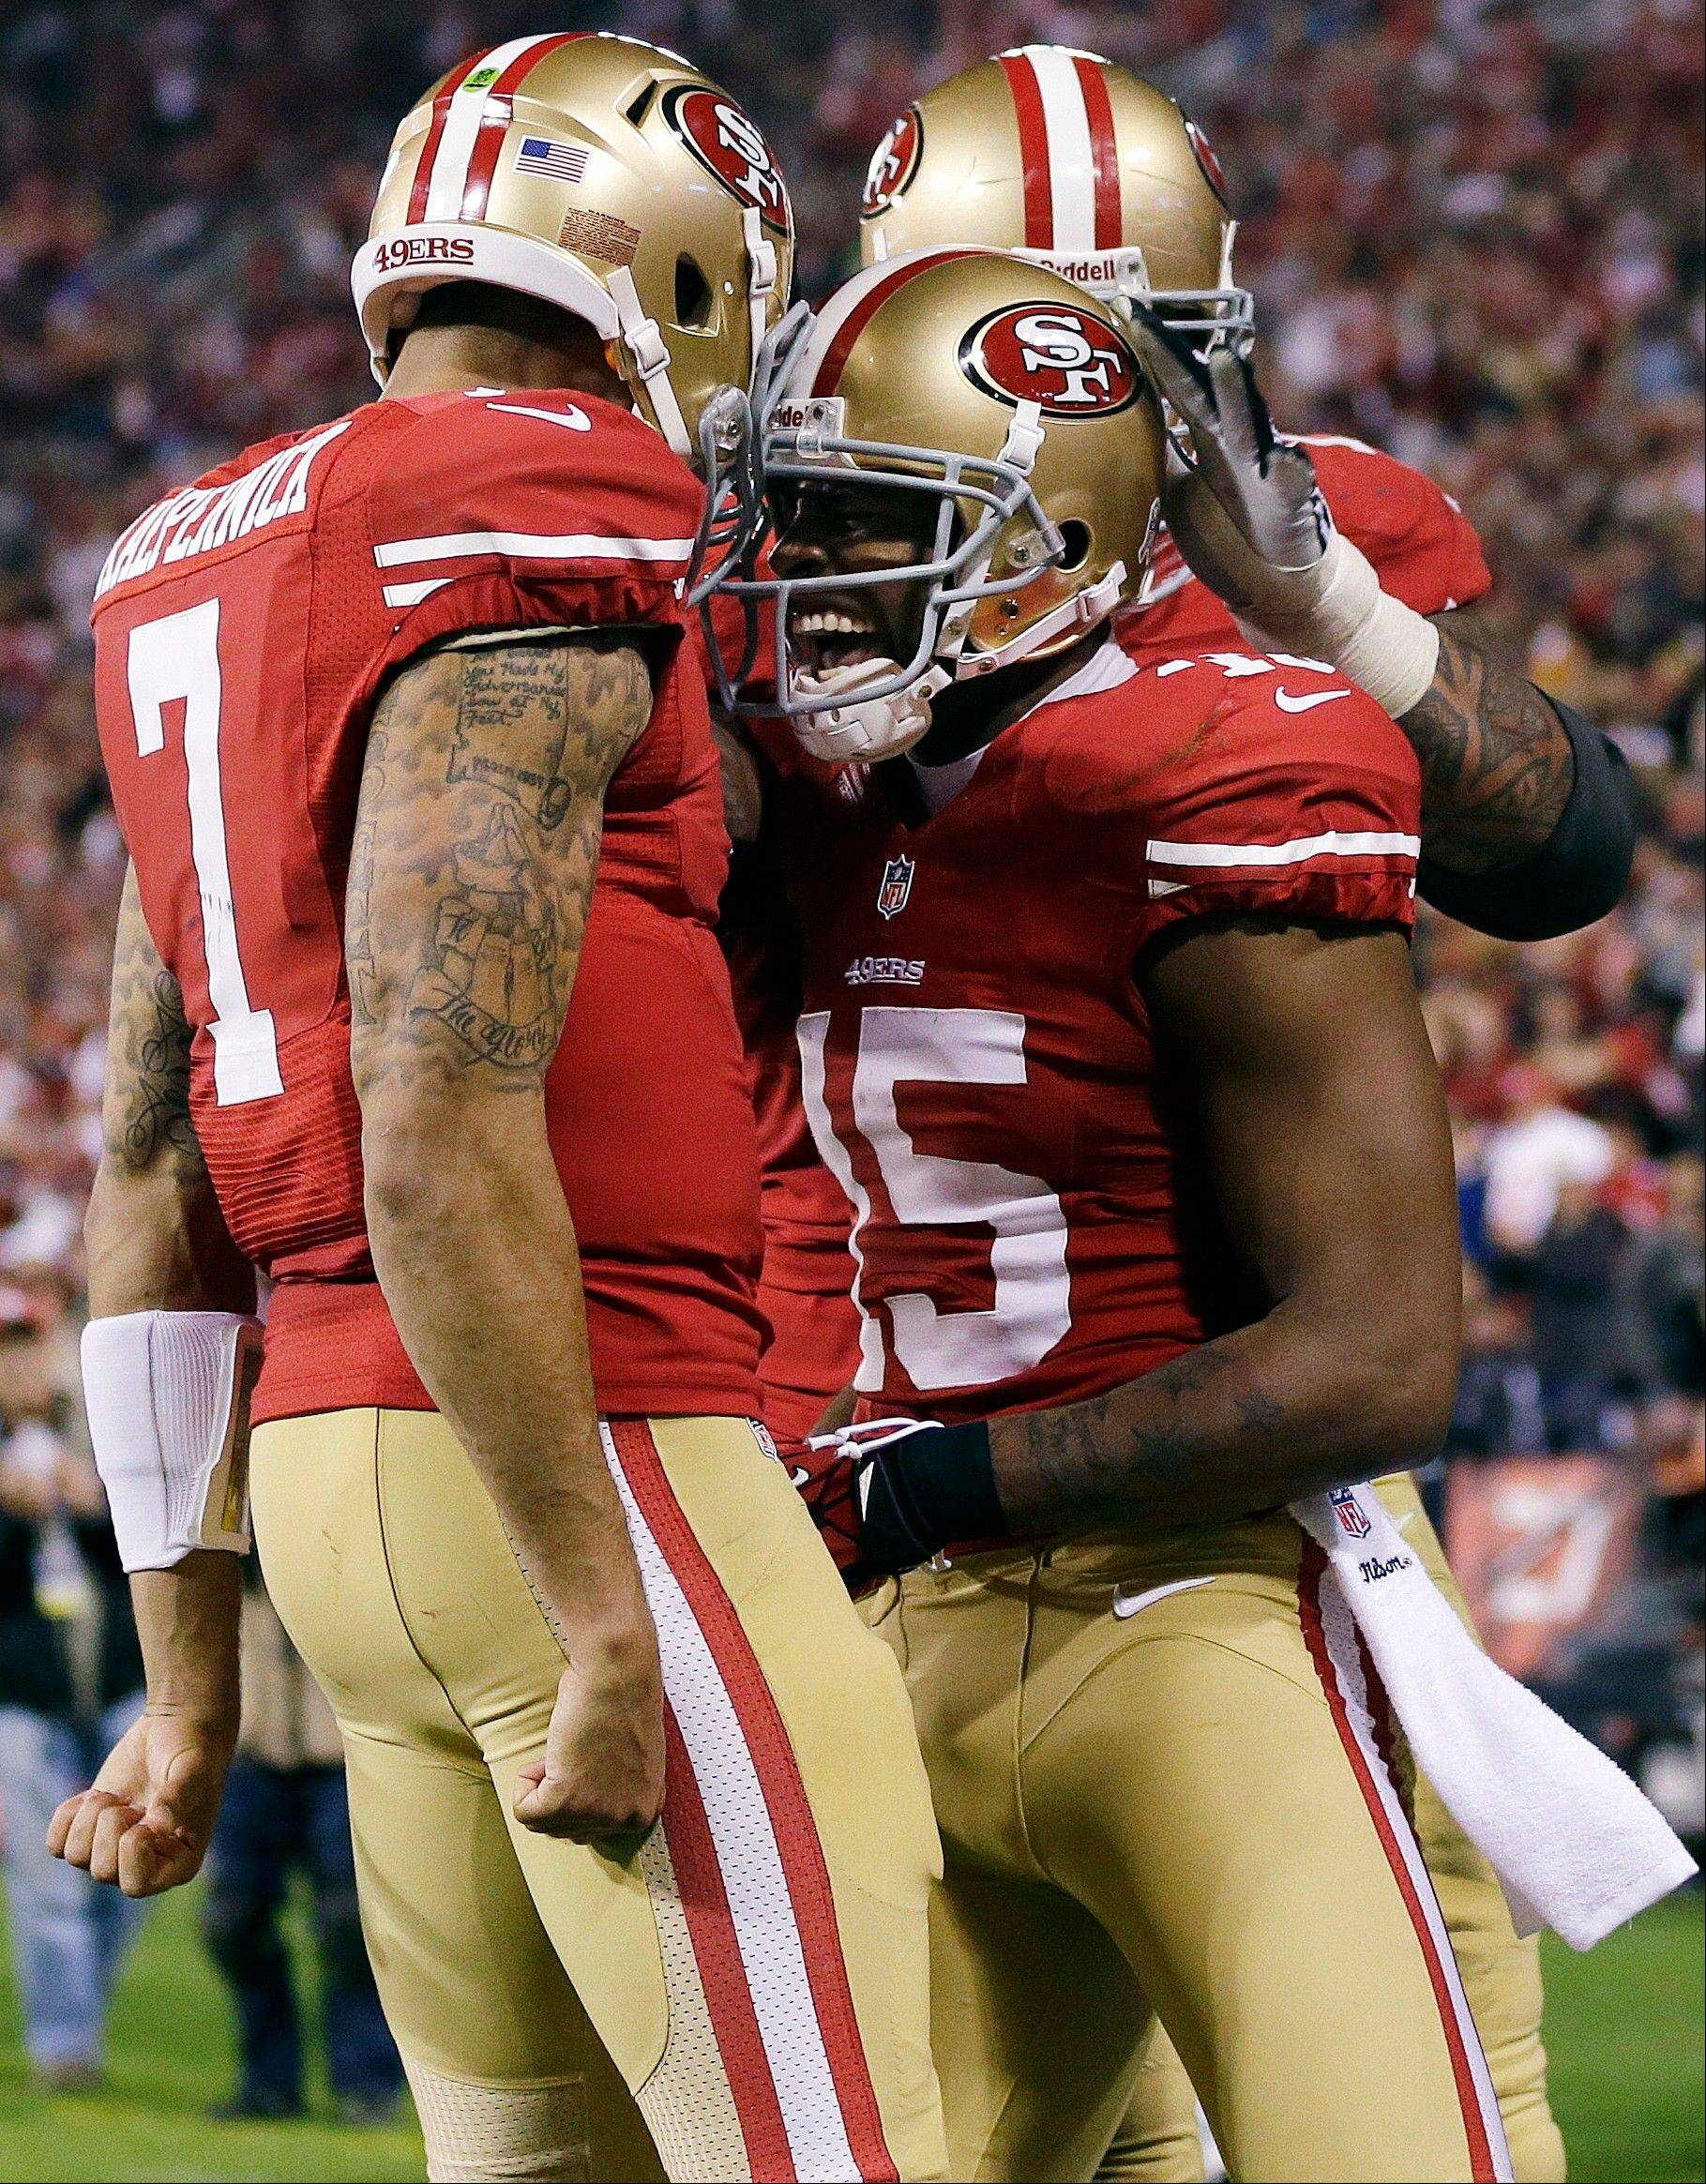 San Francisco 49ers wide receiver Michael Crabtree celebrates with quarterback Colin Kaepernick and guard Mike Iupati after scoring on a 10-yard touchdown reception.